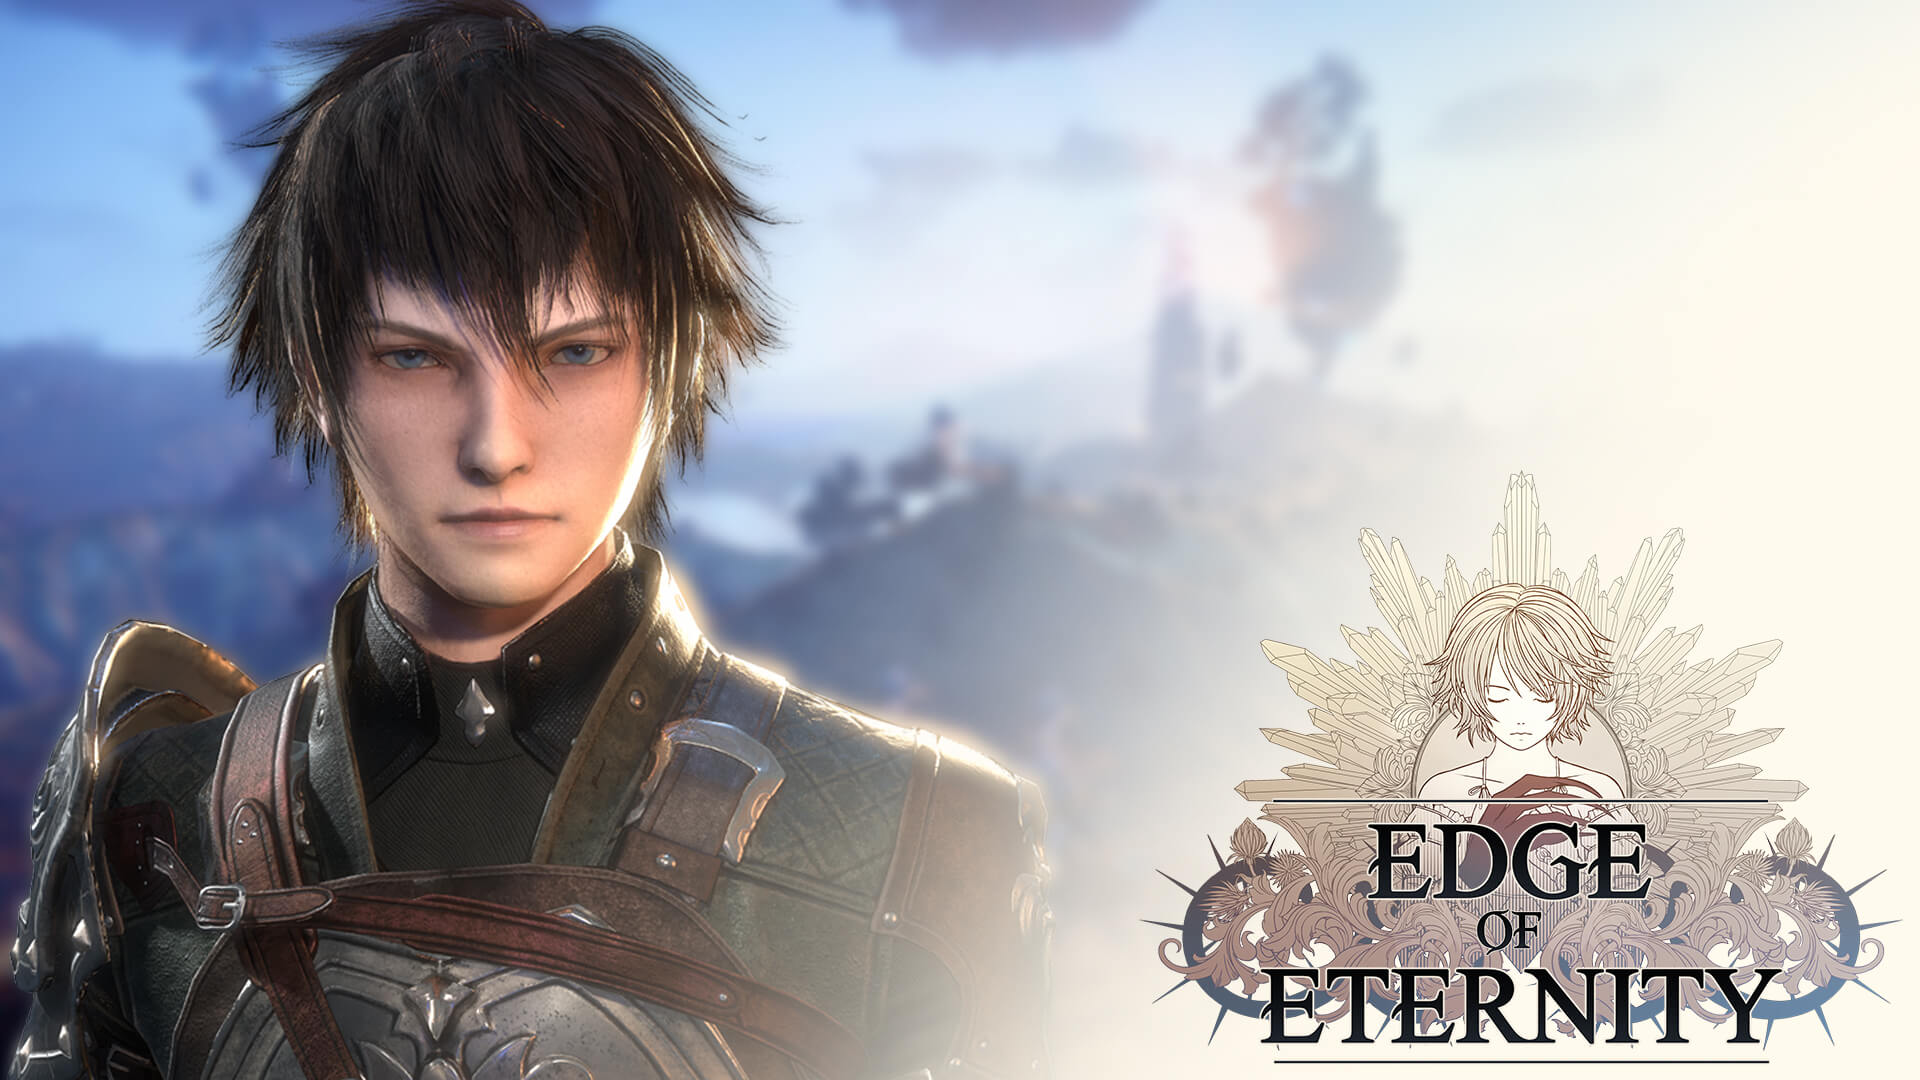 Edge of Eternity Rpg